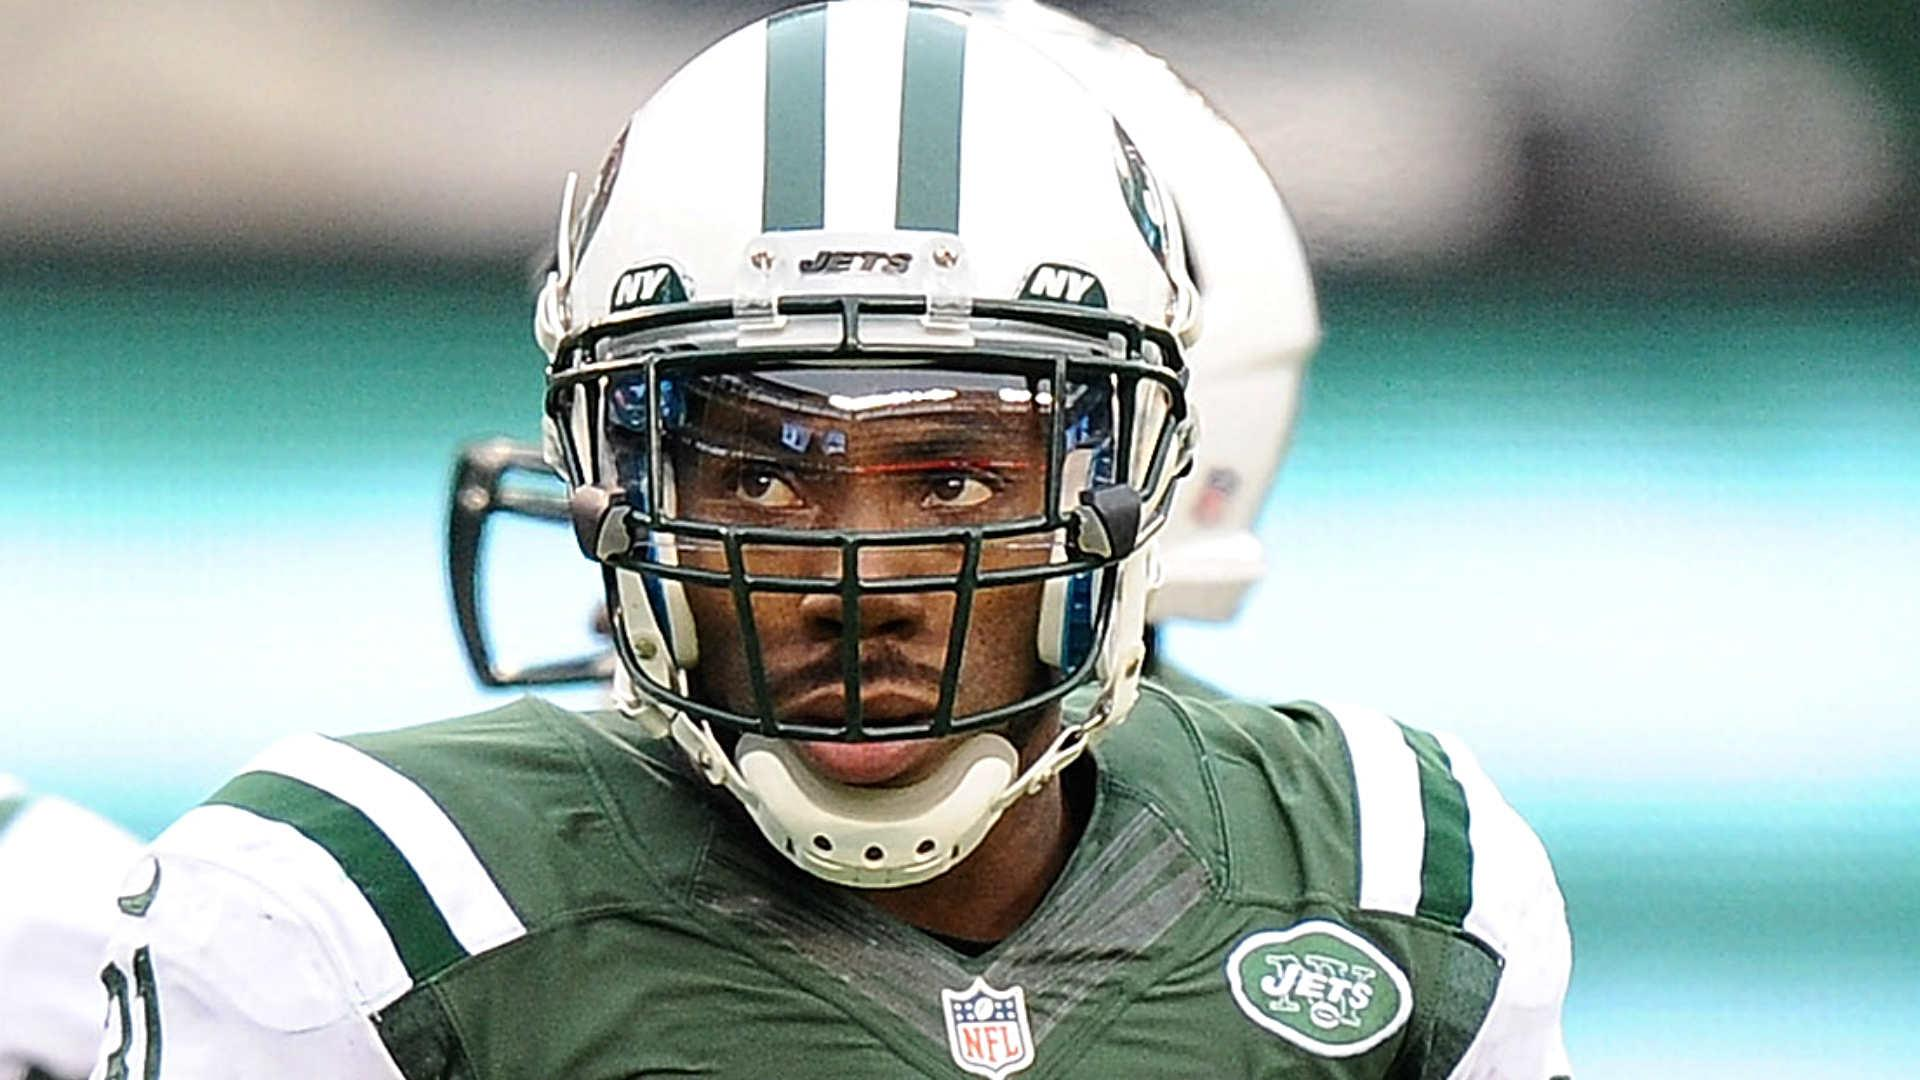 Antonio Cromartie avoids arrest thanks to new $3 million deal with Colts